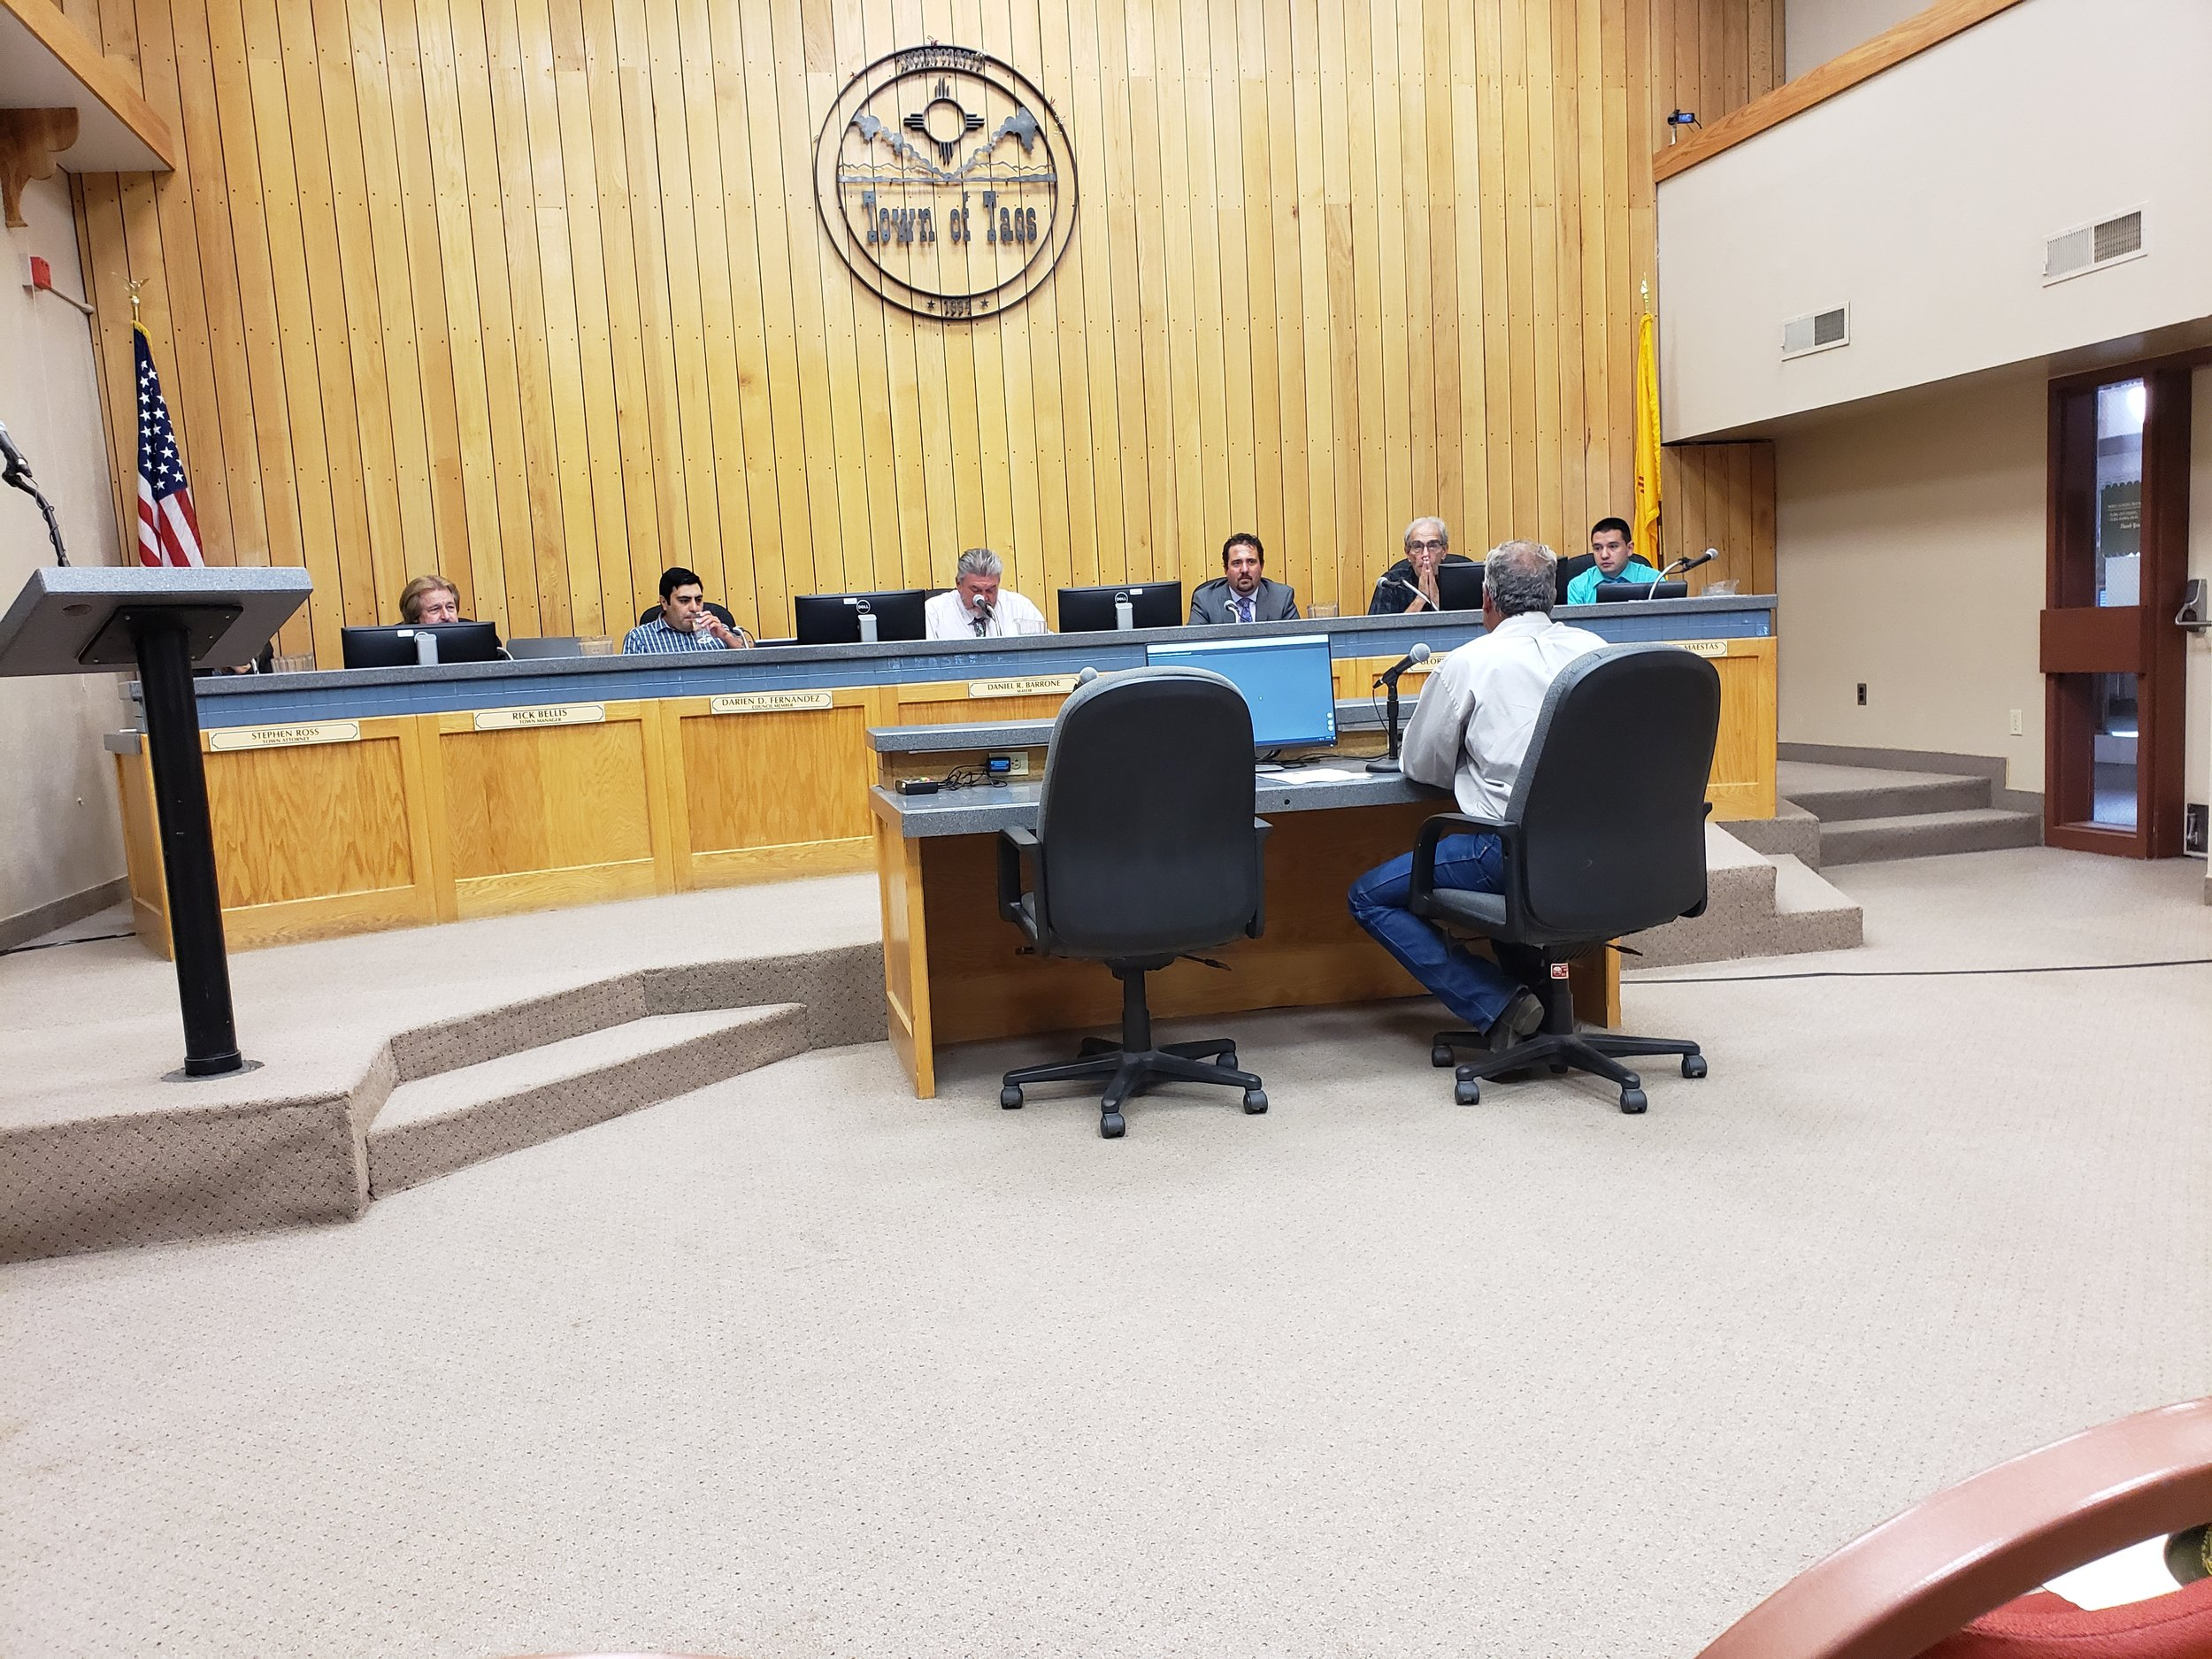 HECHO National Advisory Board Member, Rock Ulibarri, shares comment in support of the Wildlife Corridors Resolution in the Town of Taos County Commission Meeting